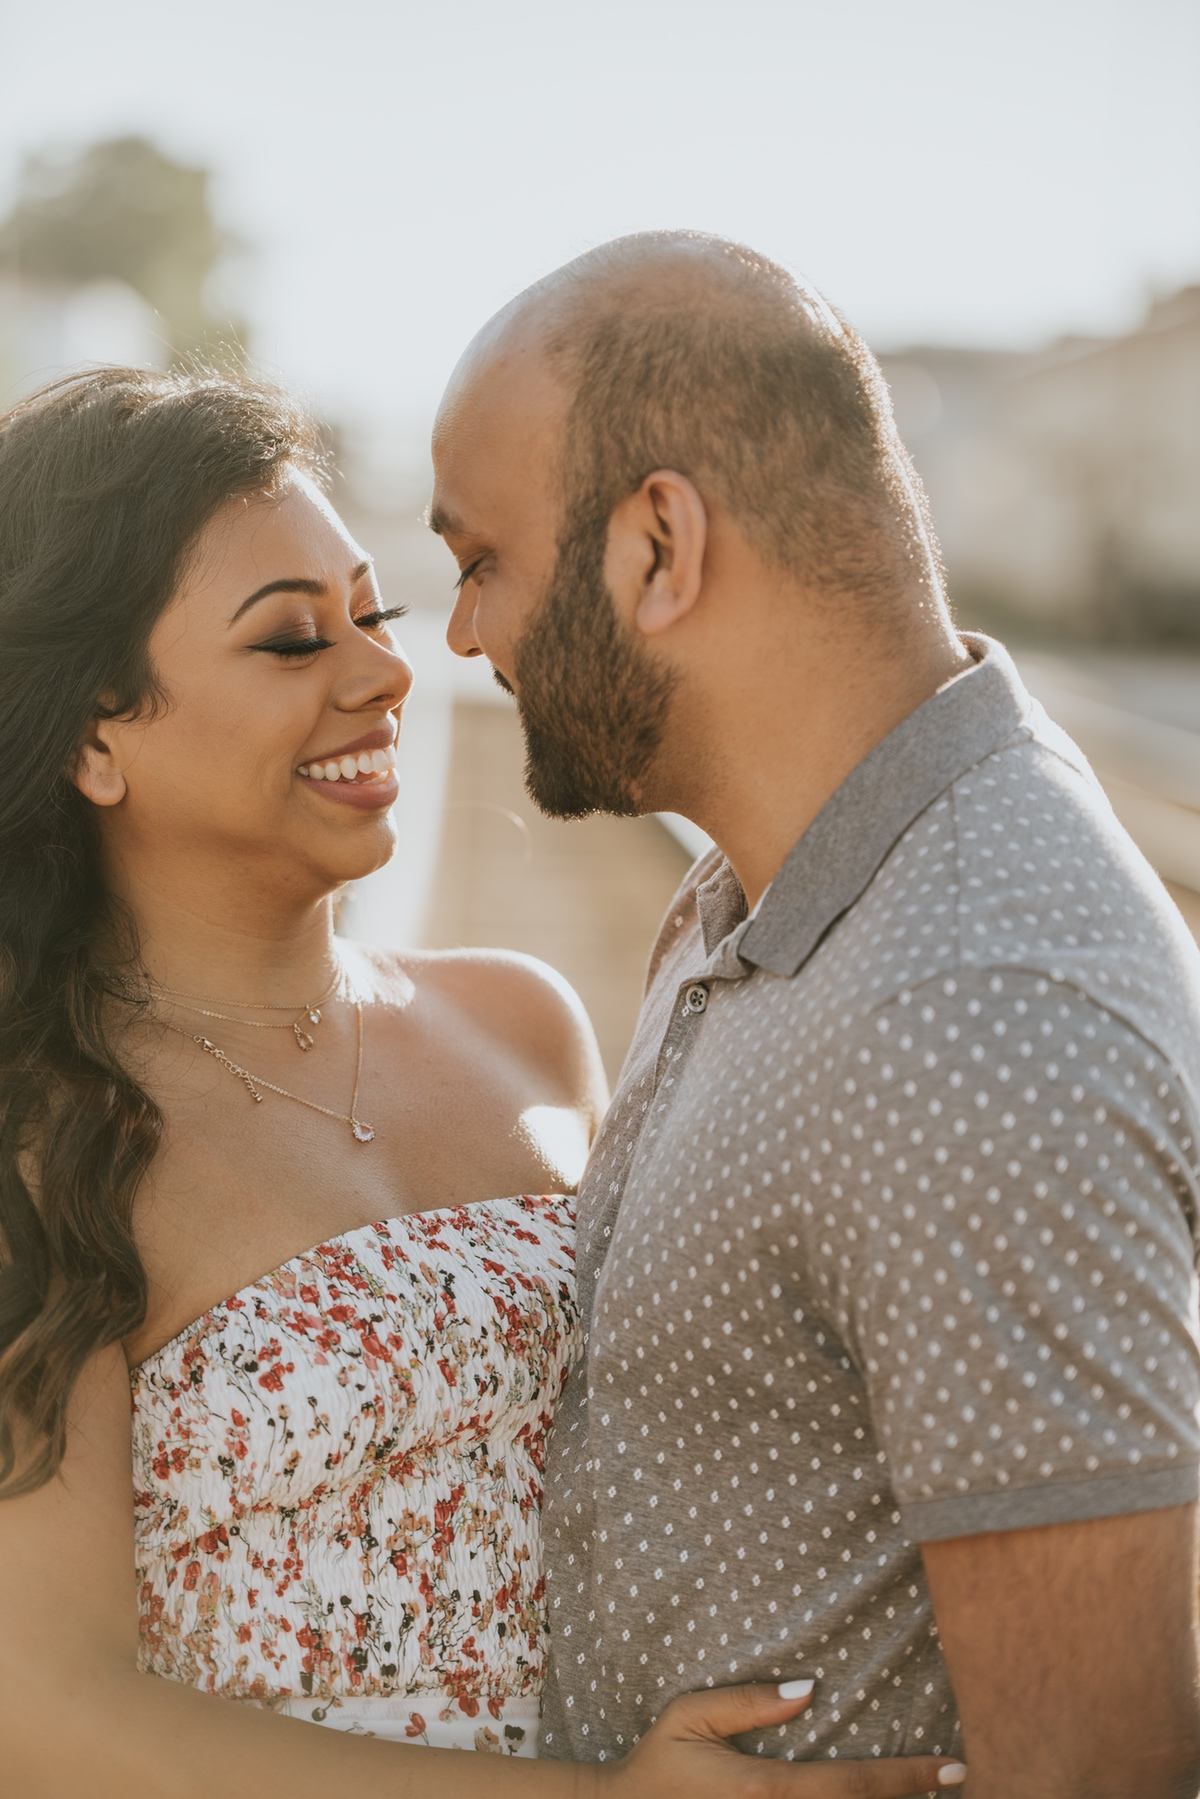 Le Cape Weddings - Engagement Session in Chicago - Brinjal-8.jpg